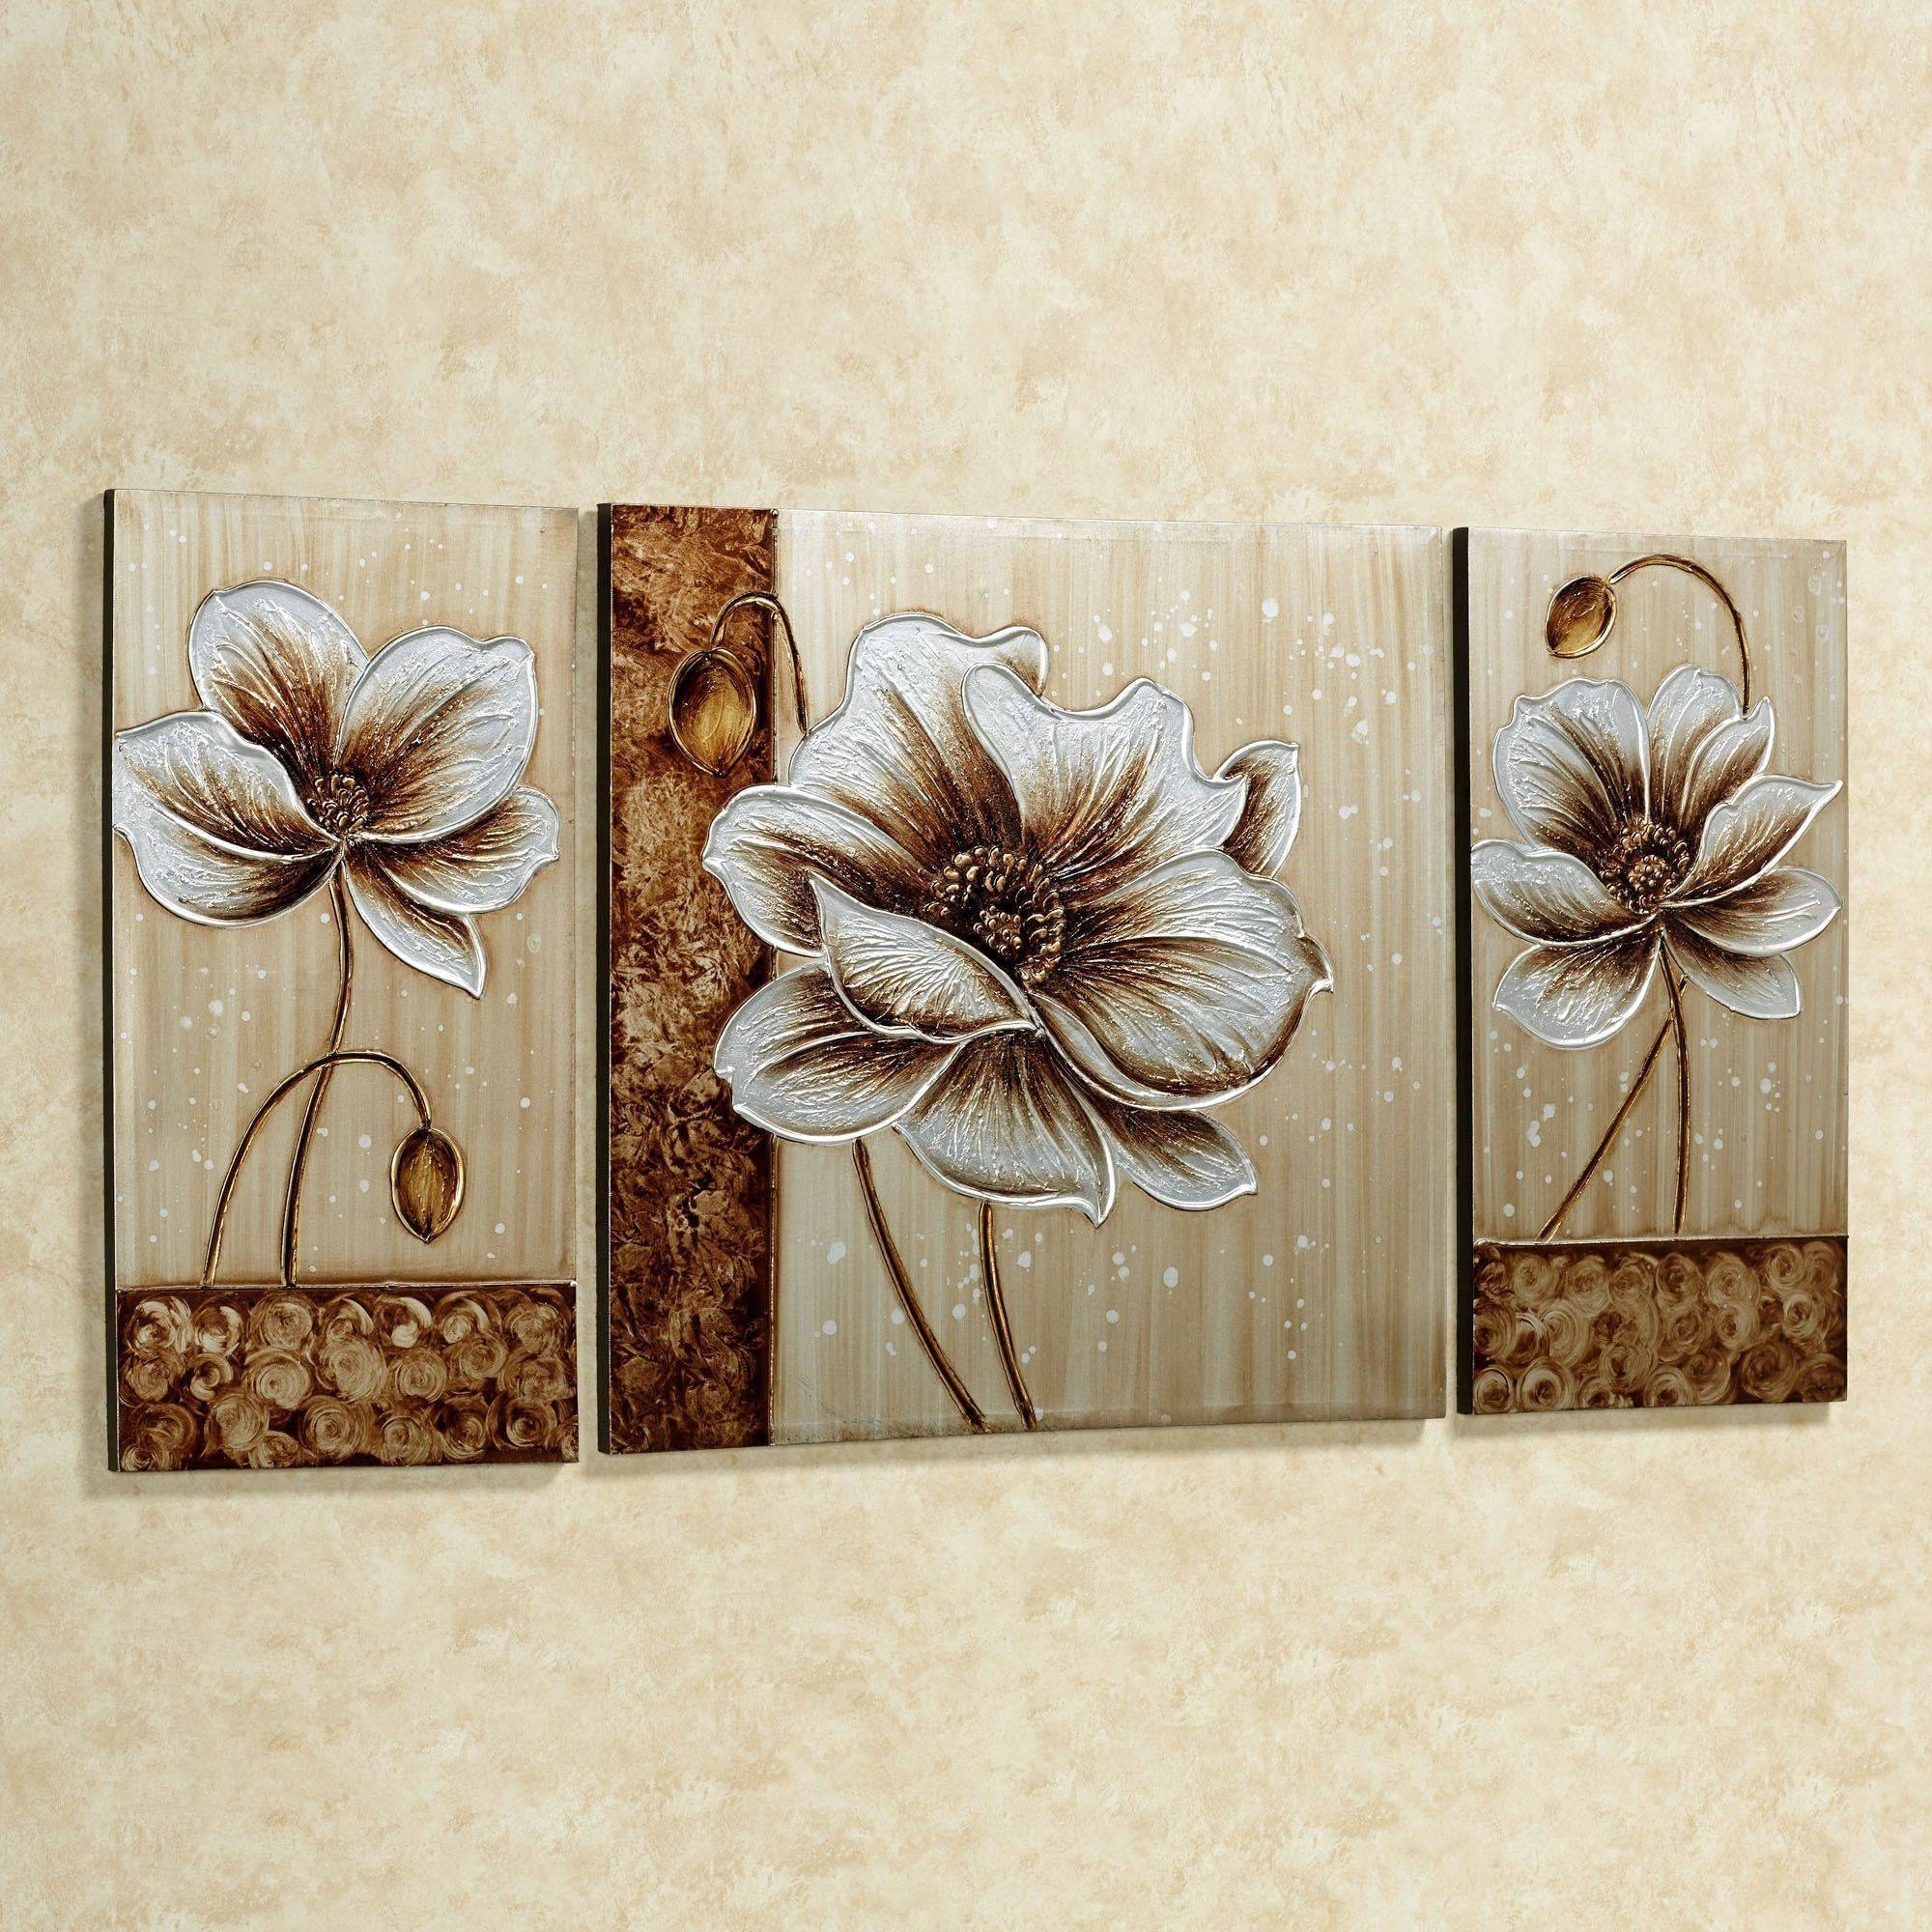 Subtle Elegance Floral Canvas Wall Art Set Inside 2018 4 Piece Wall Art Sets (View 17 of 20)